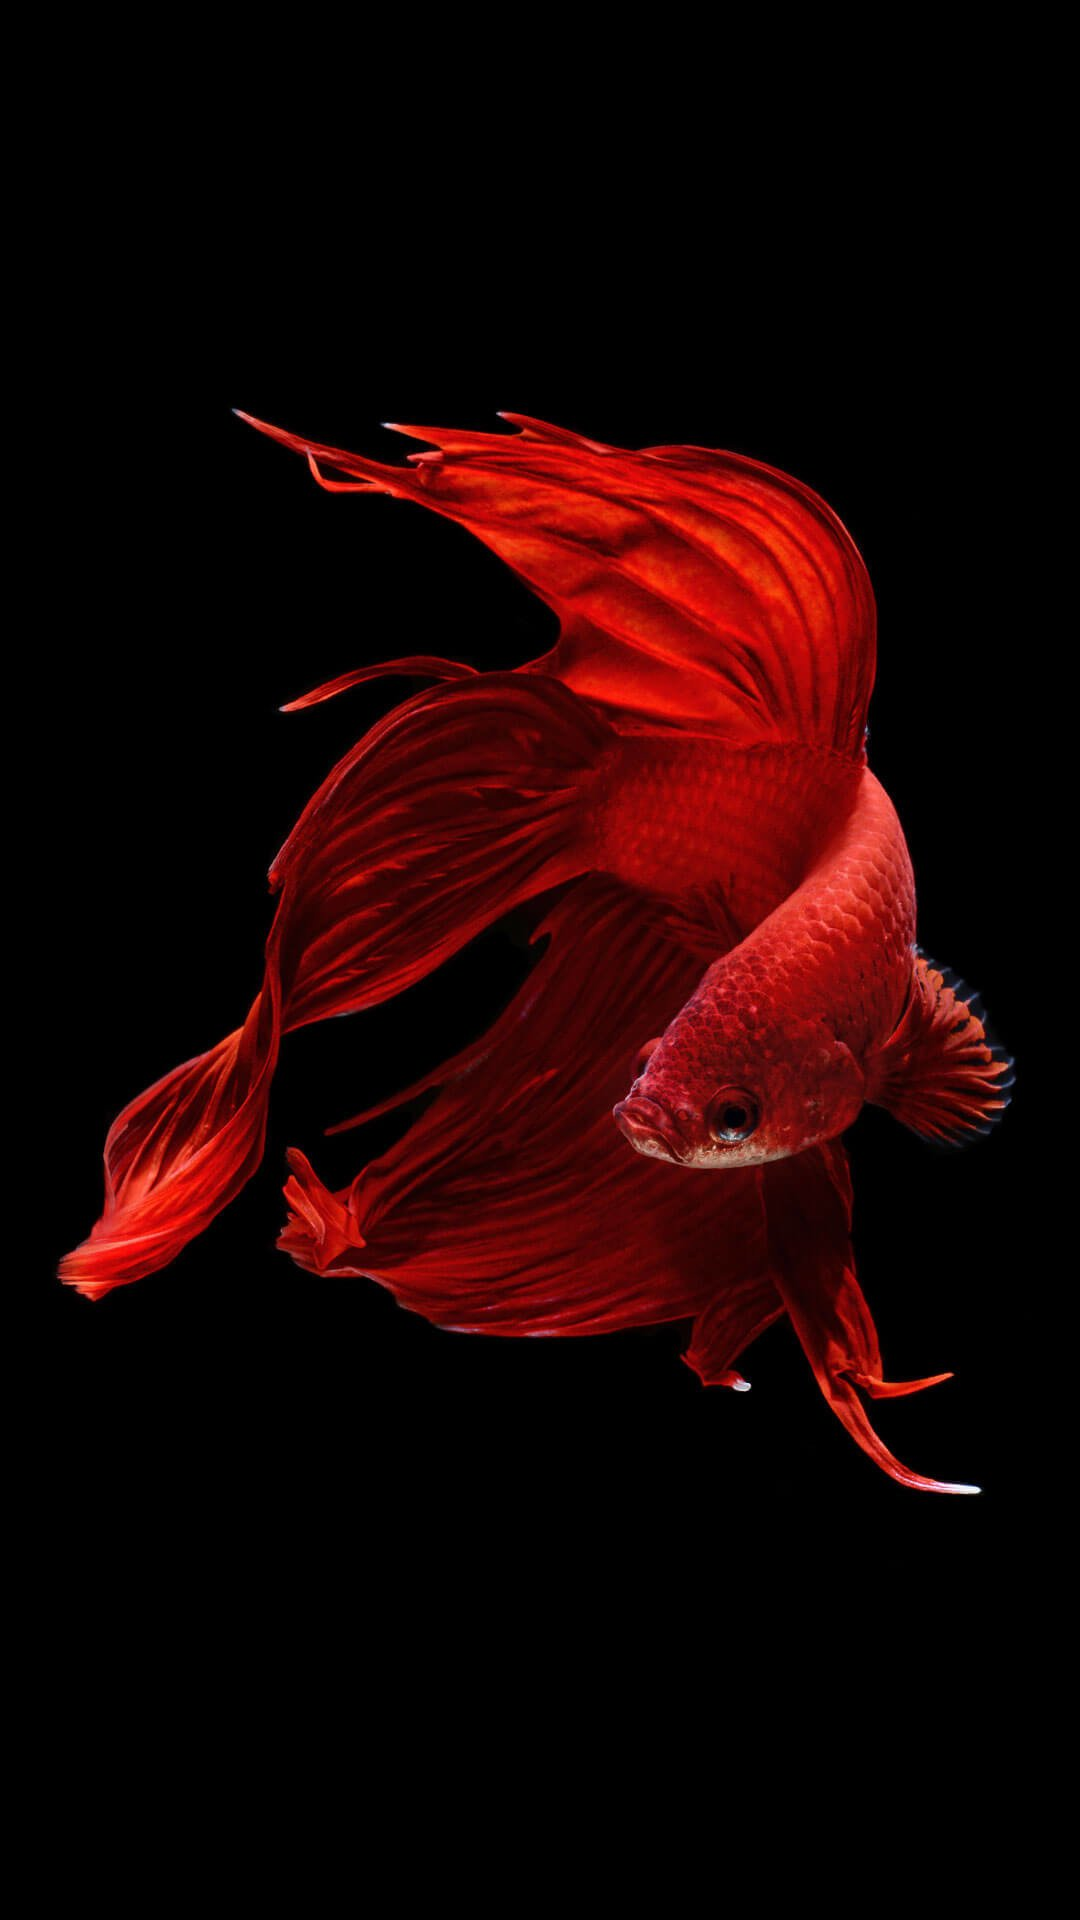 Red Fish Wallpapers Top Free Red Fish Backgrounds Wallpaperaccess